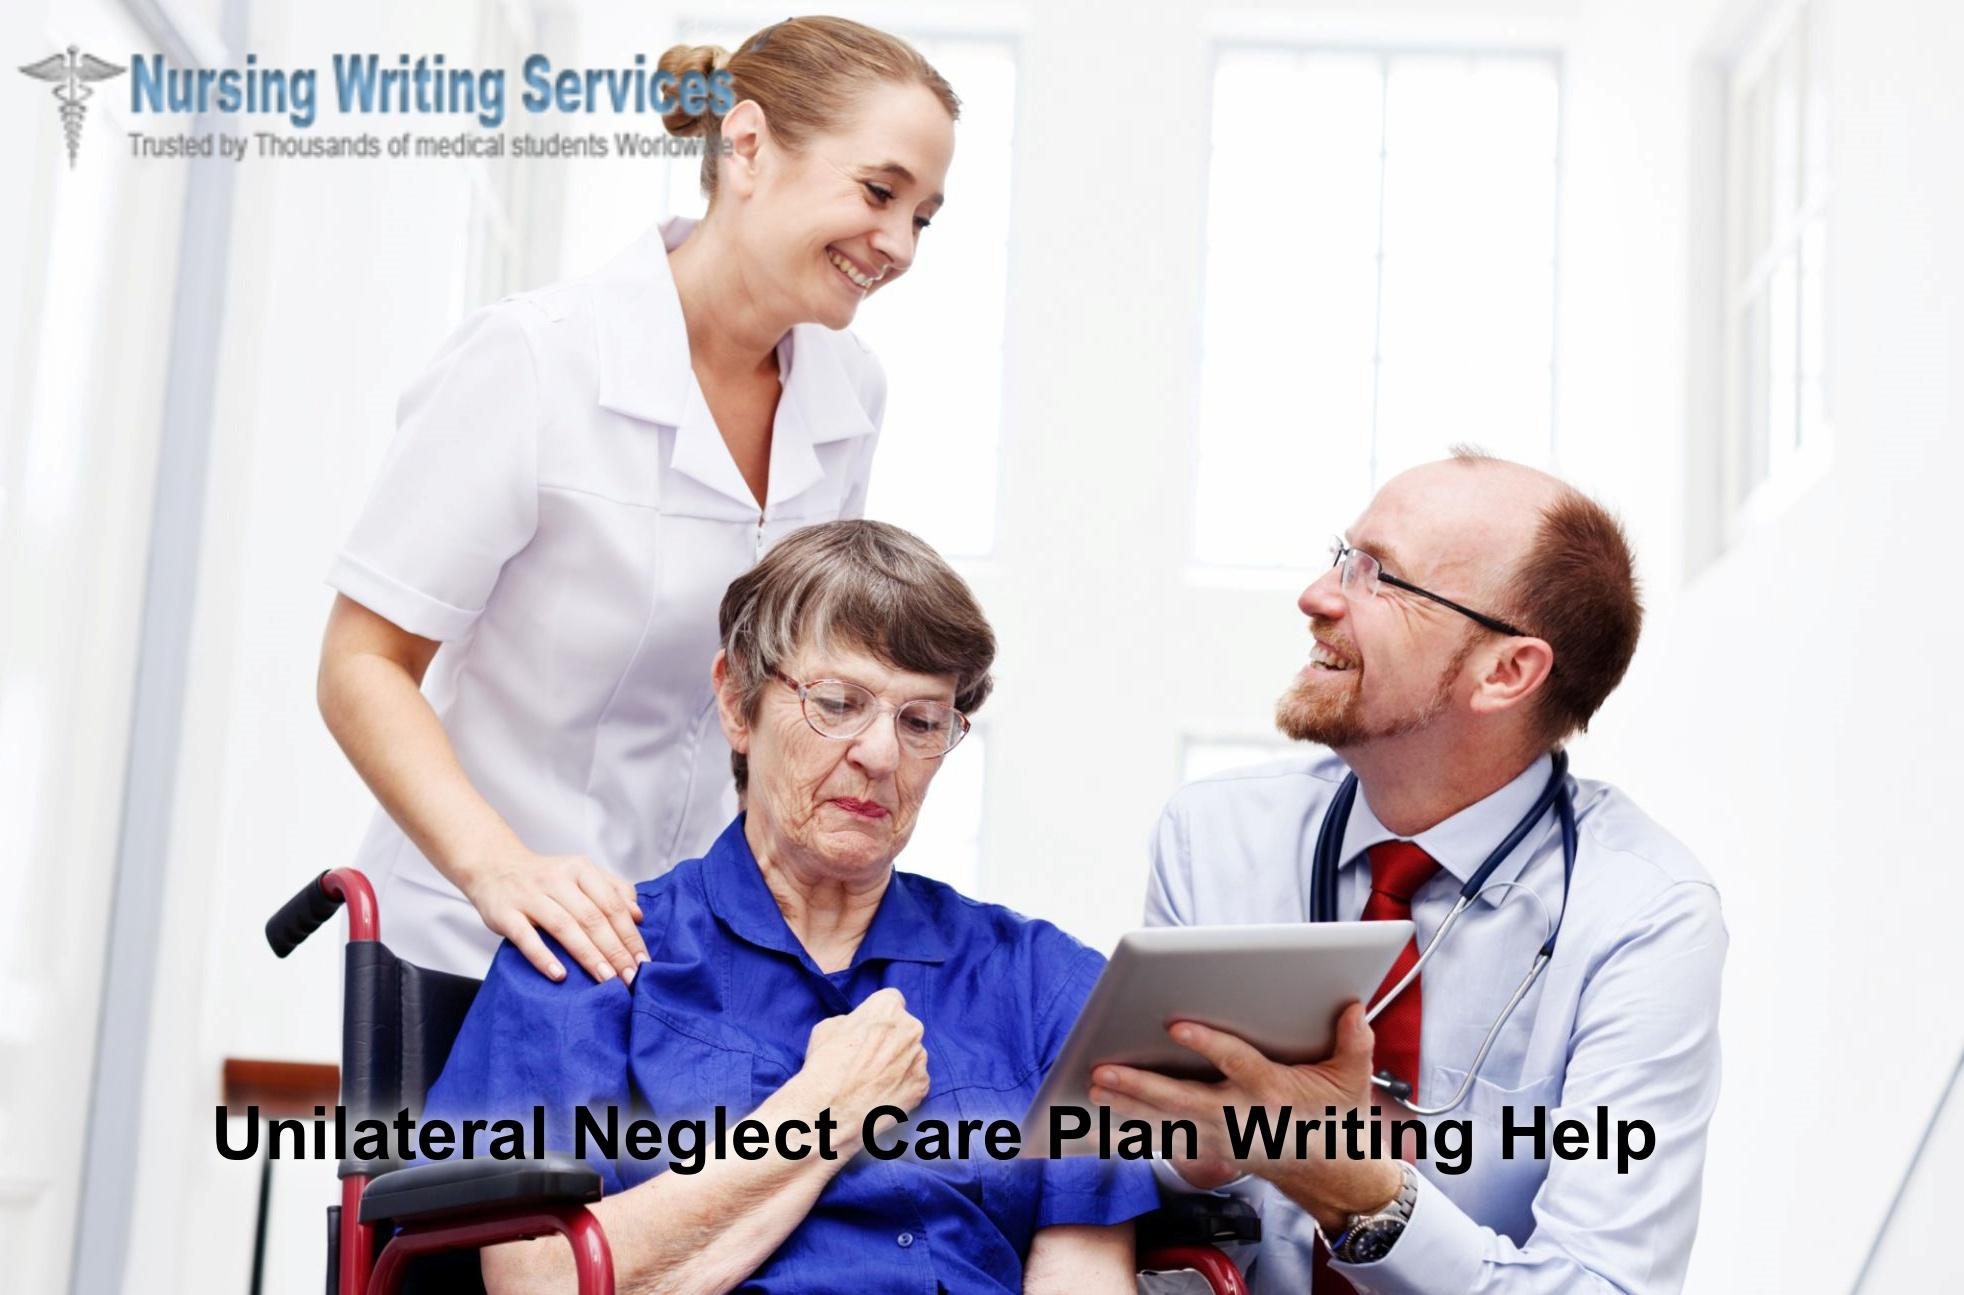 Unilateral Neglect Care Plan Writing Help